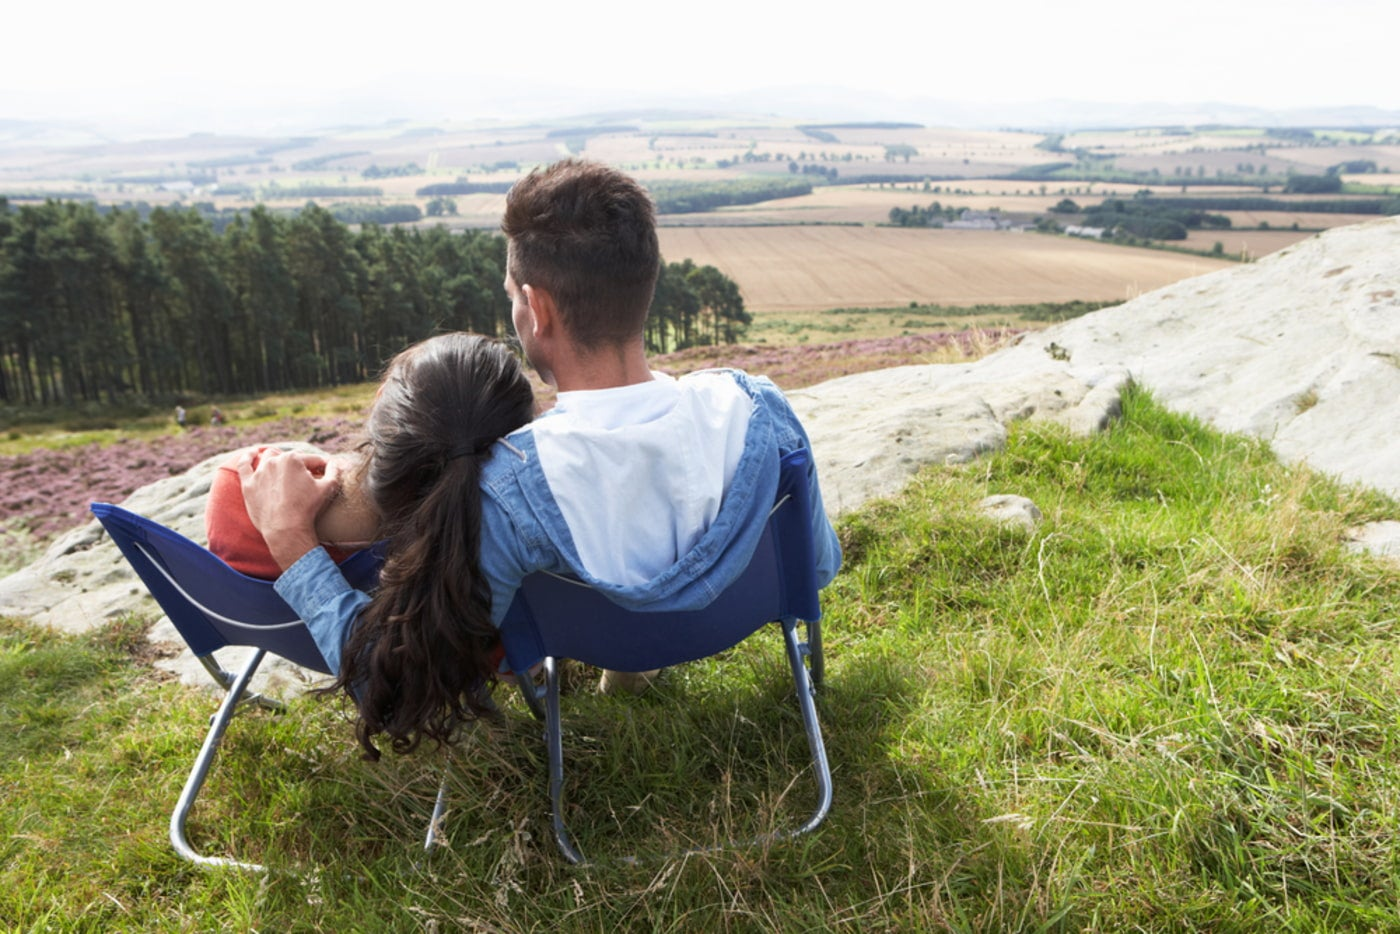 a couple sharing a blue loveseat camp chair, perched on a grassy hill and looking over an agricultural landscape.